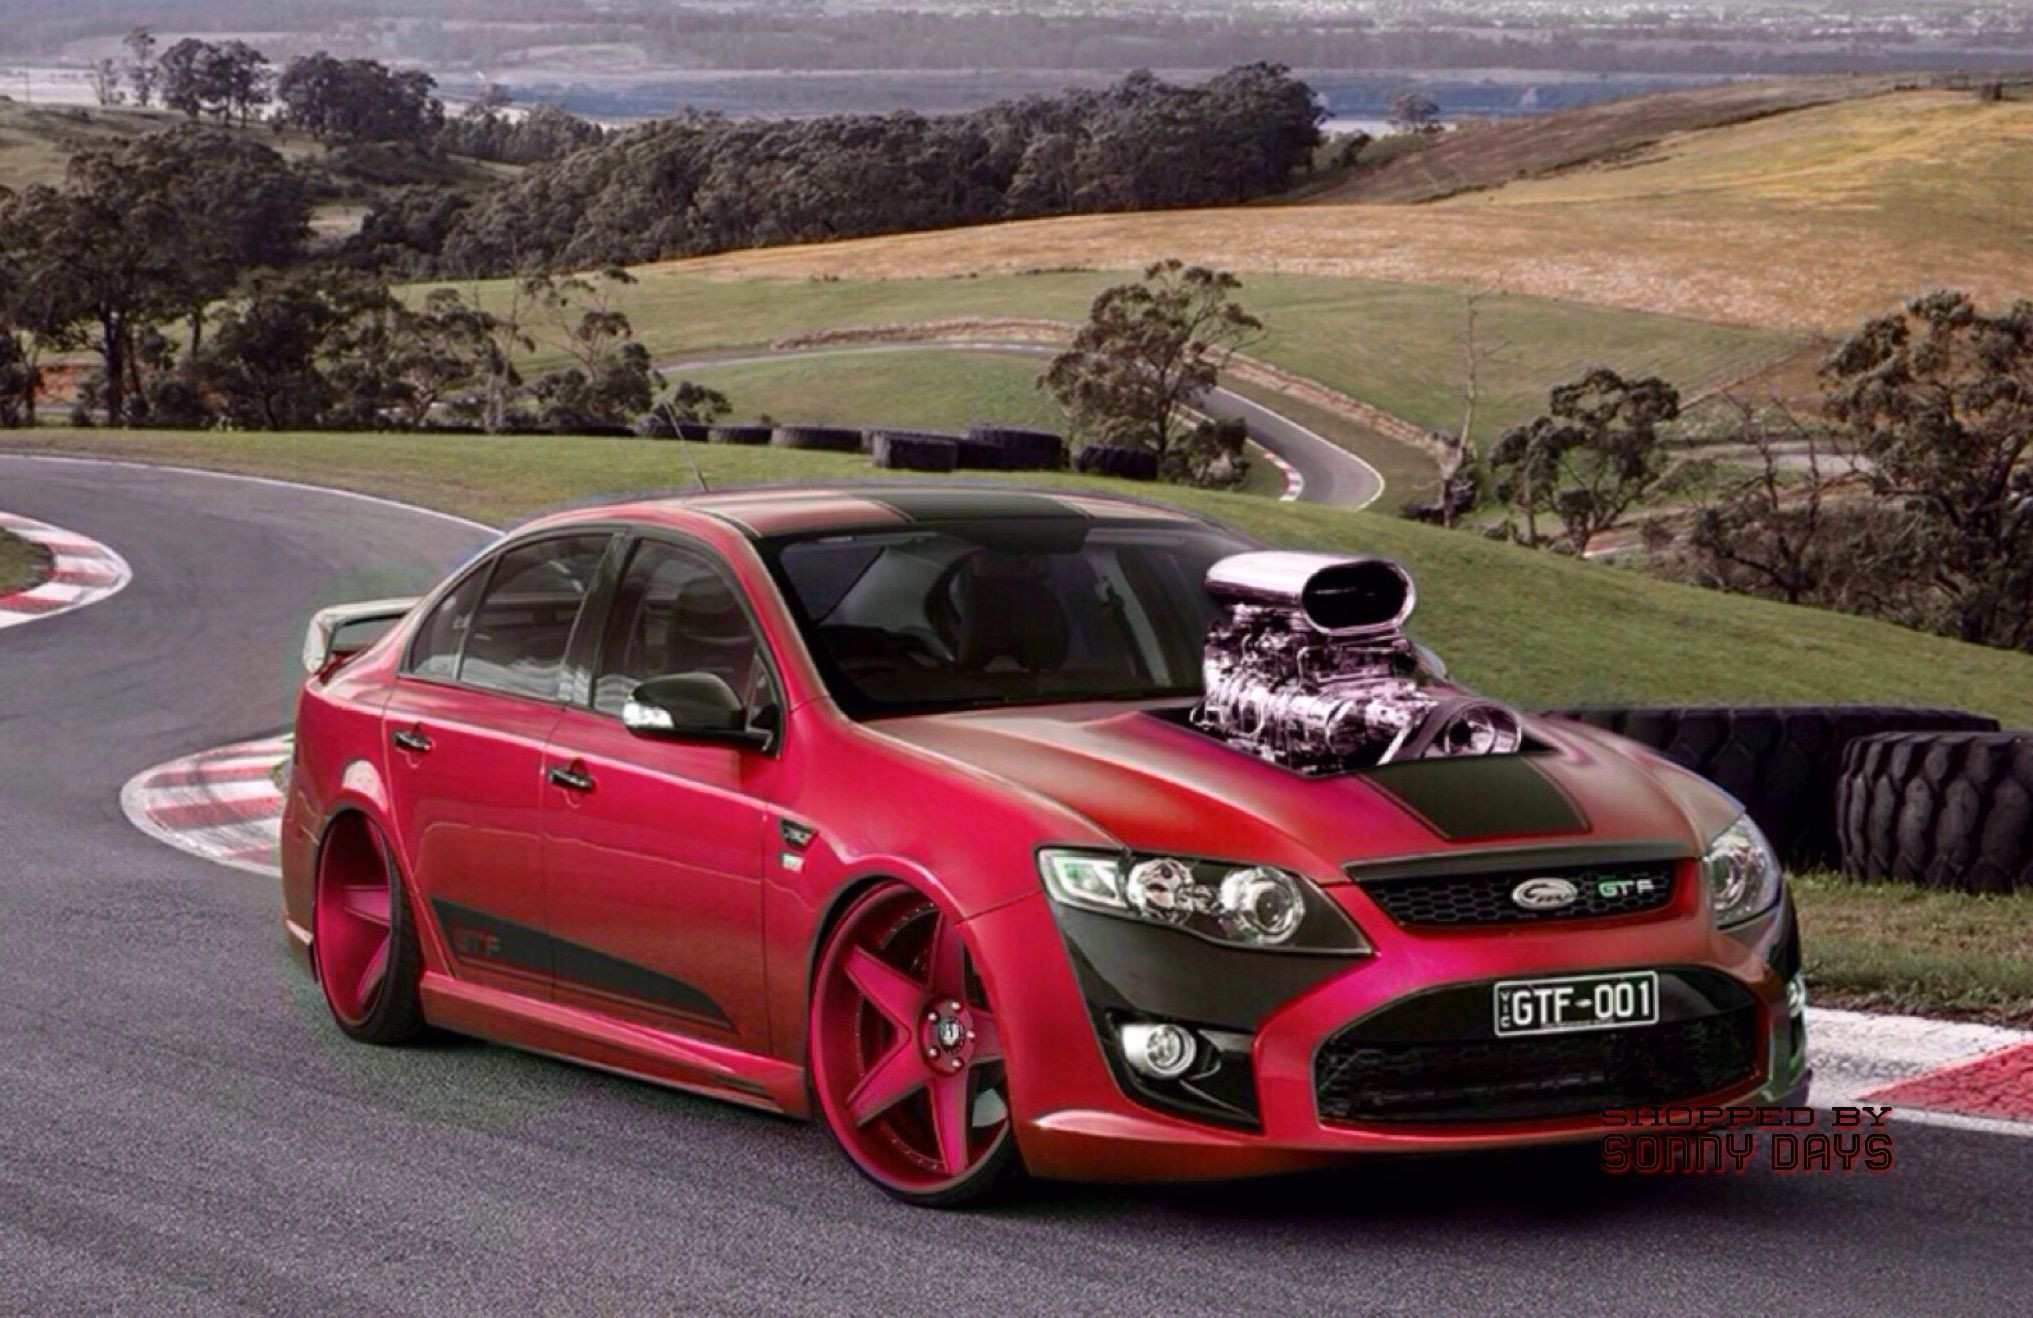 63 The 2020 Ford Falcon Xr8 Gt First Drive